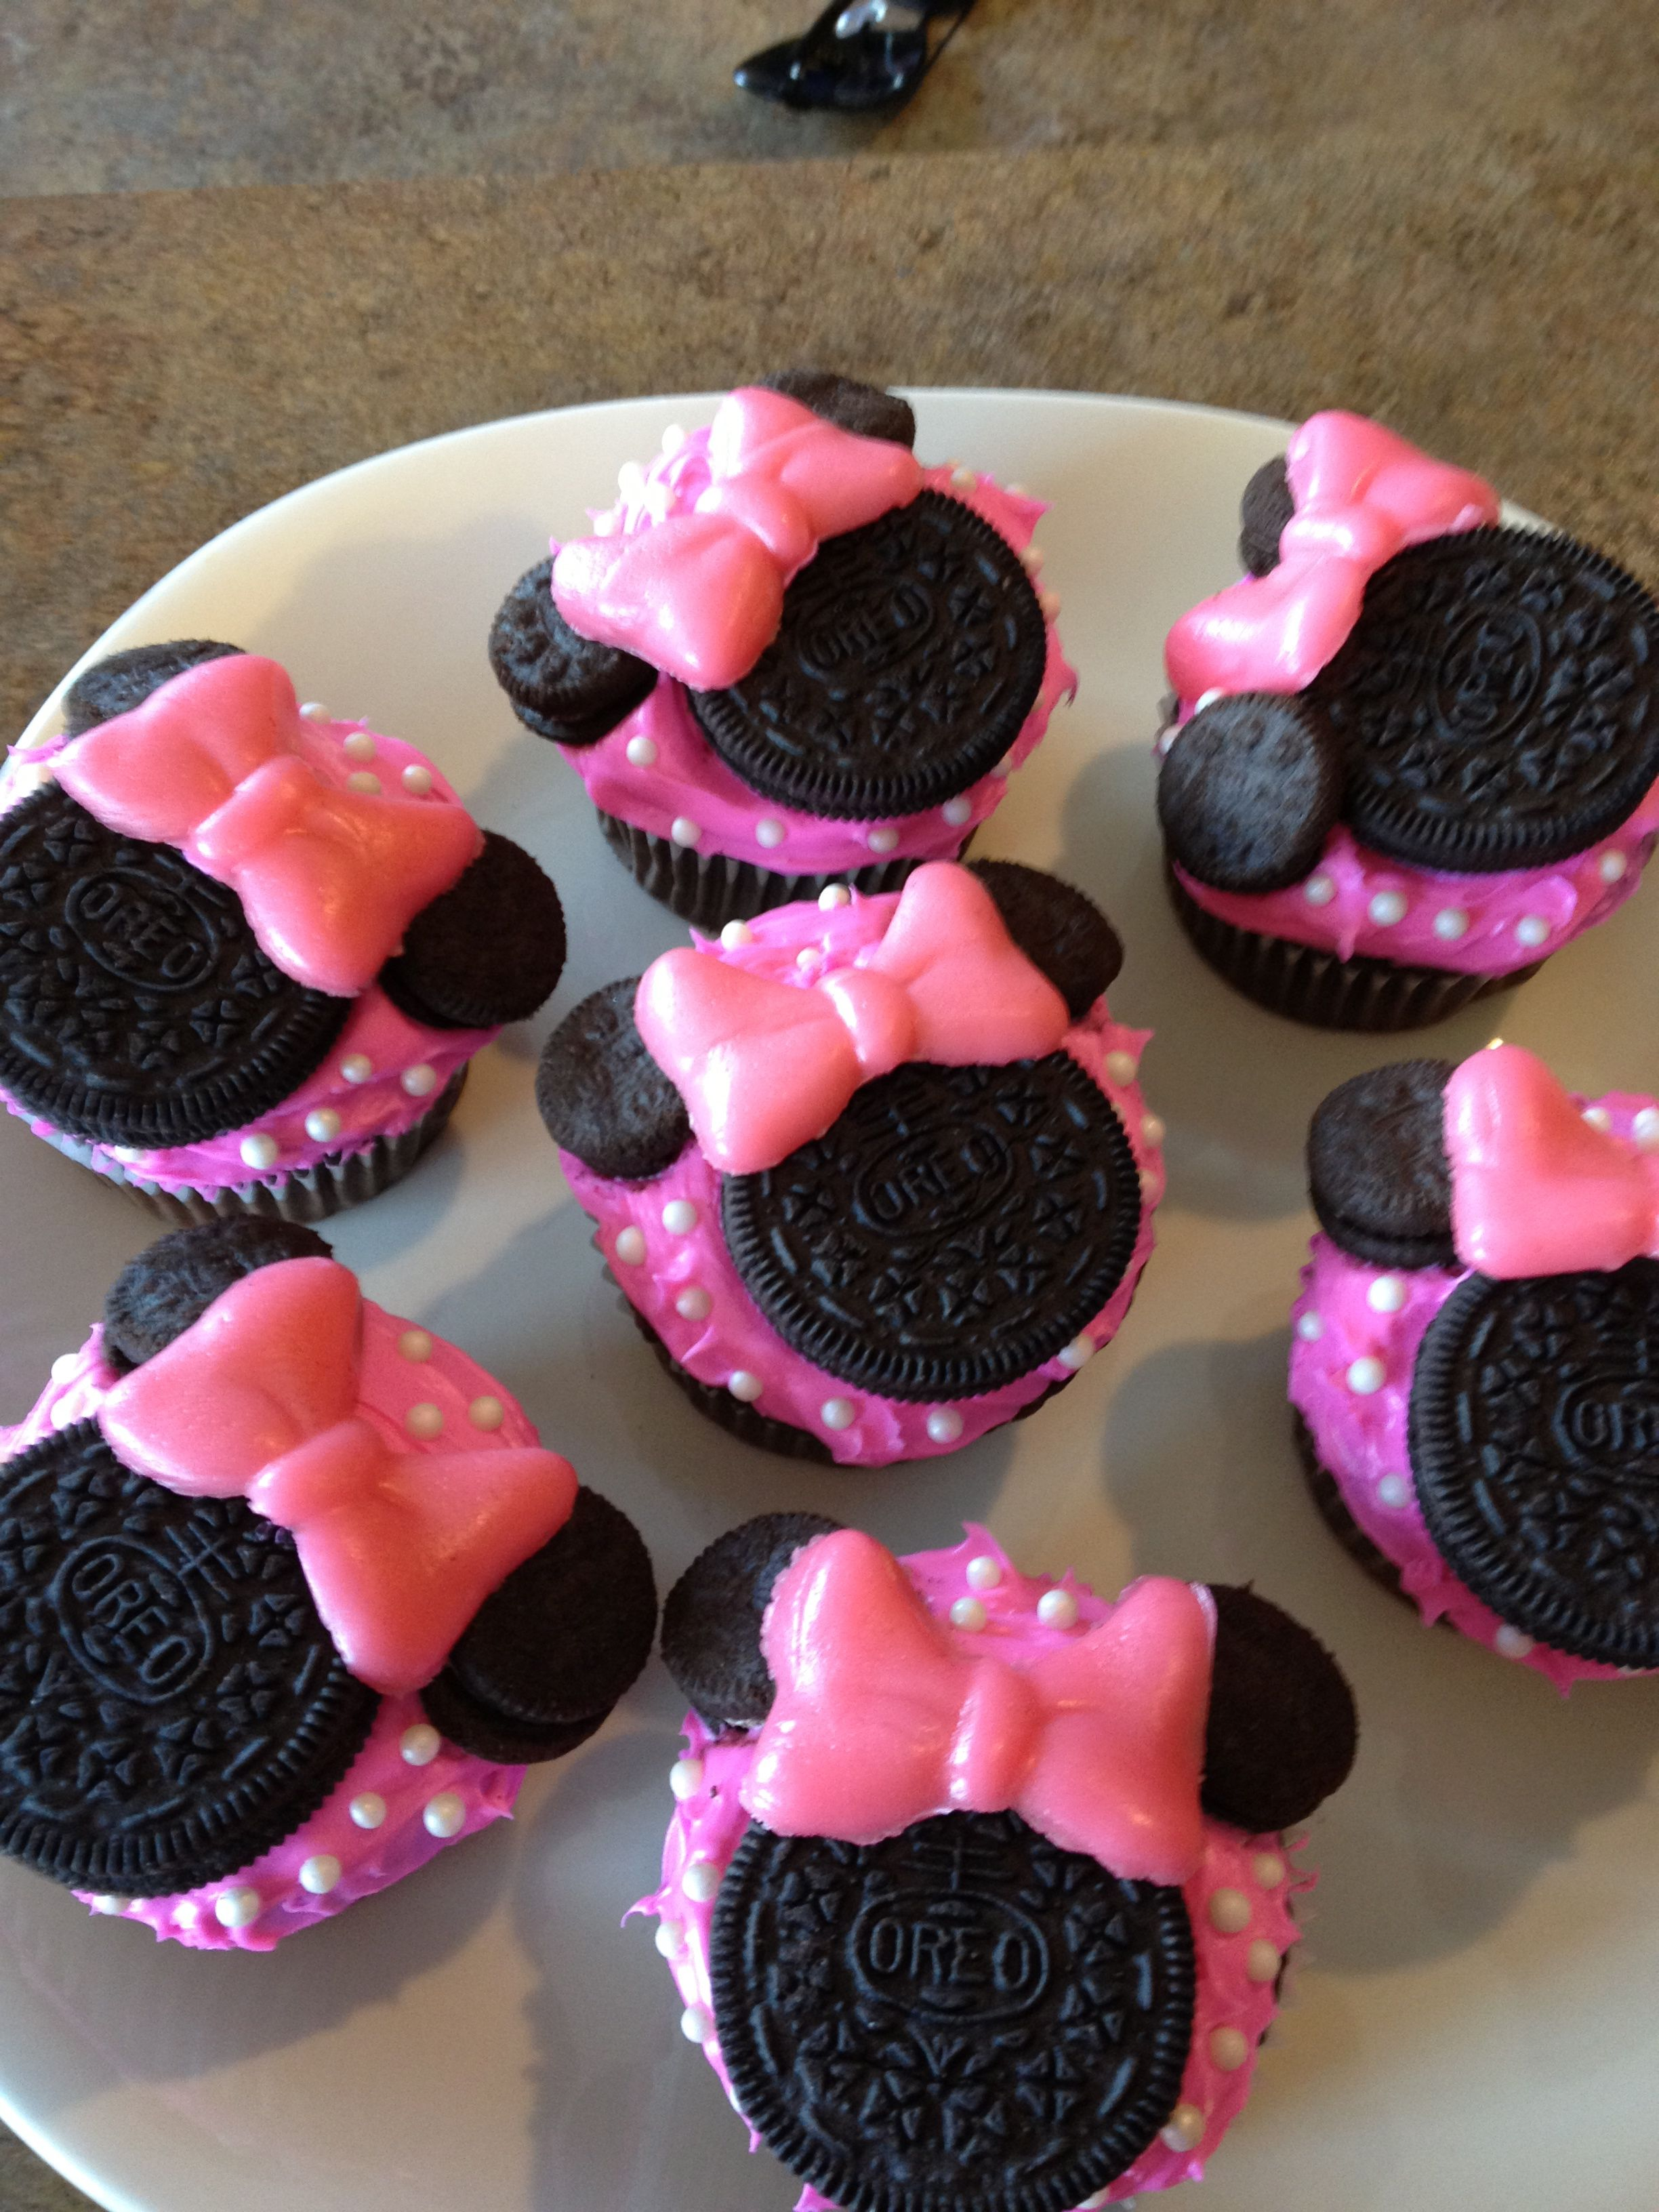 Sutton Requested Minnie Mouse Cupcakes For Her 4th